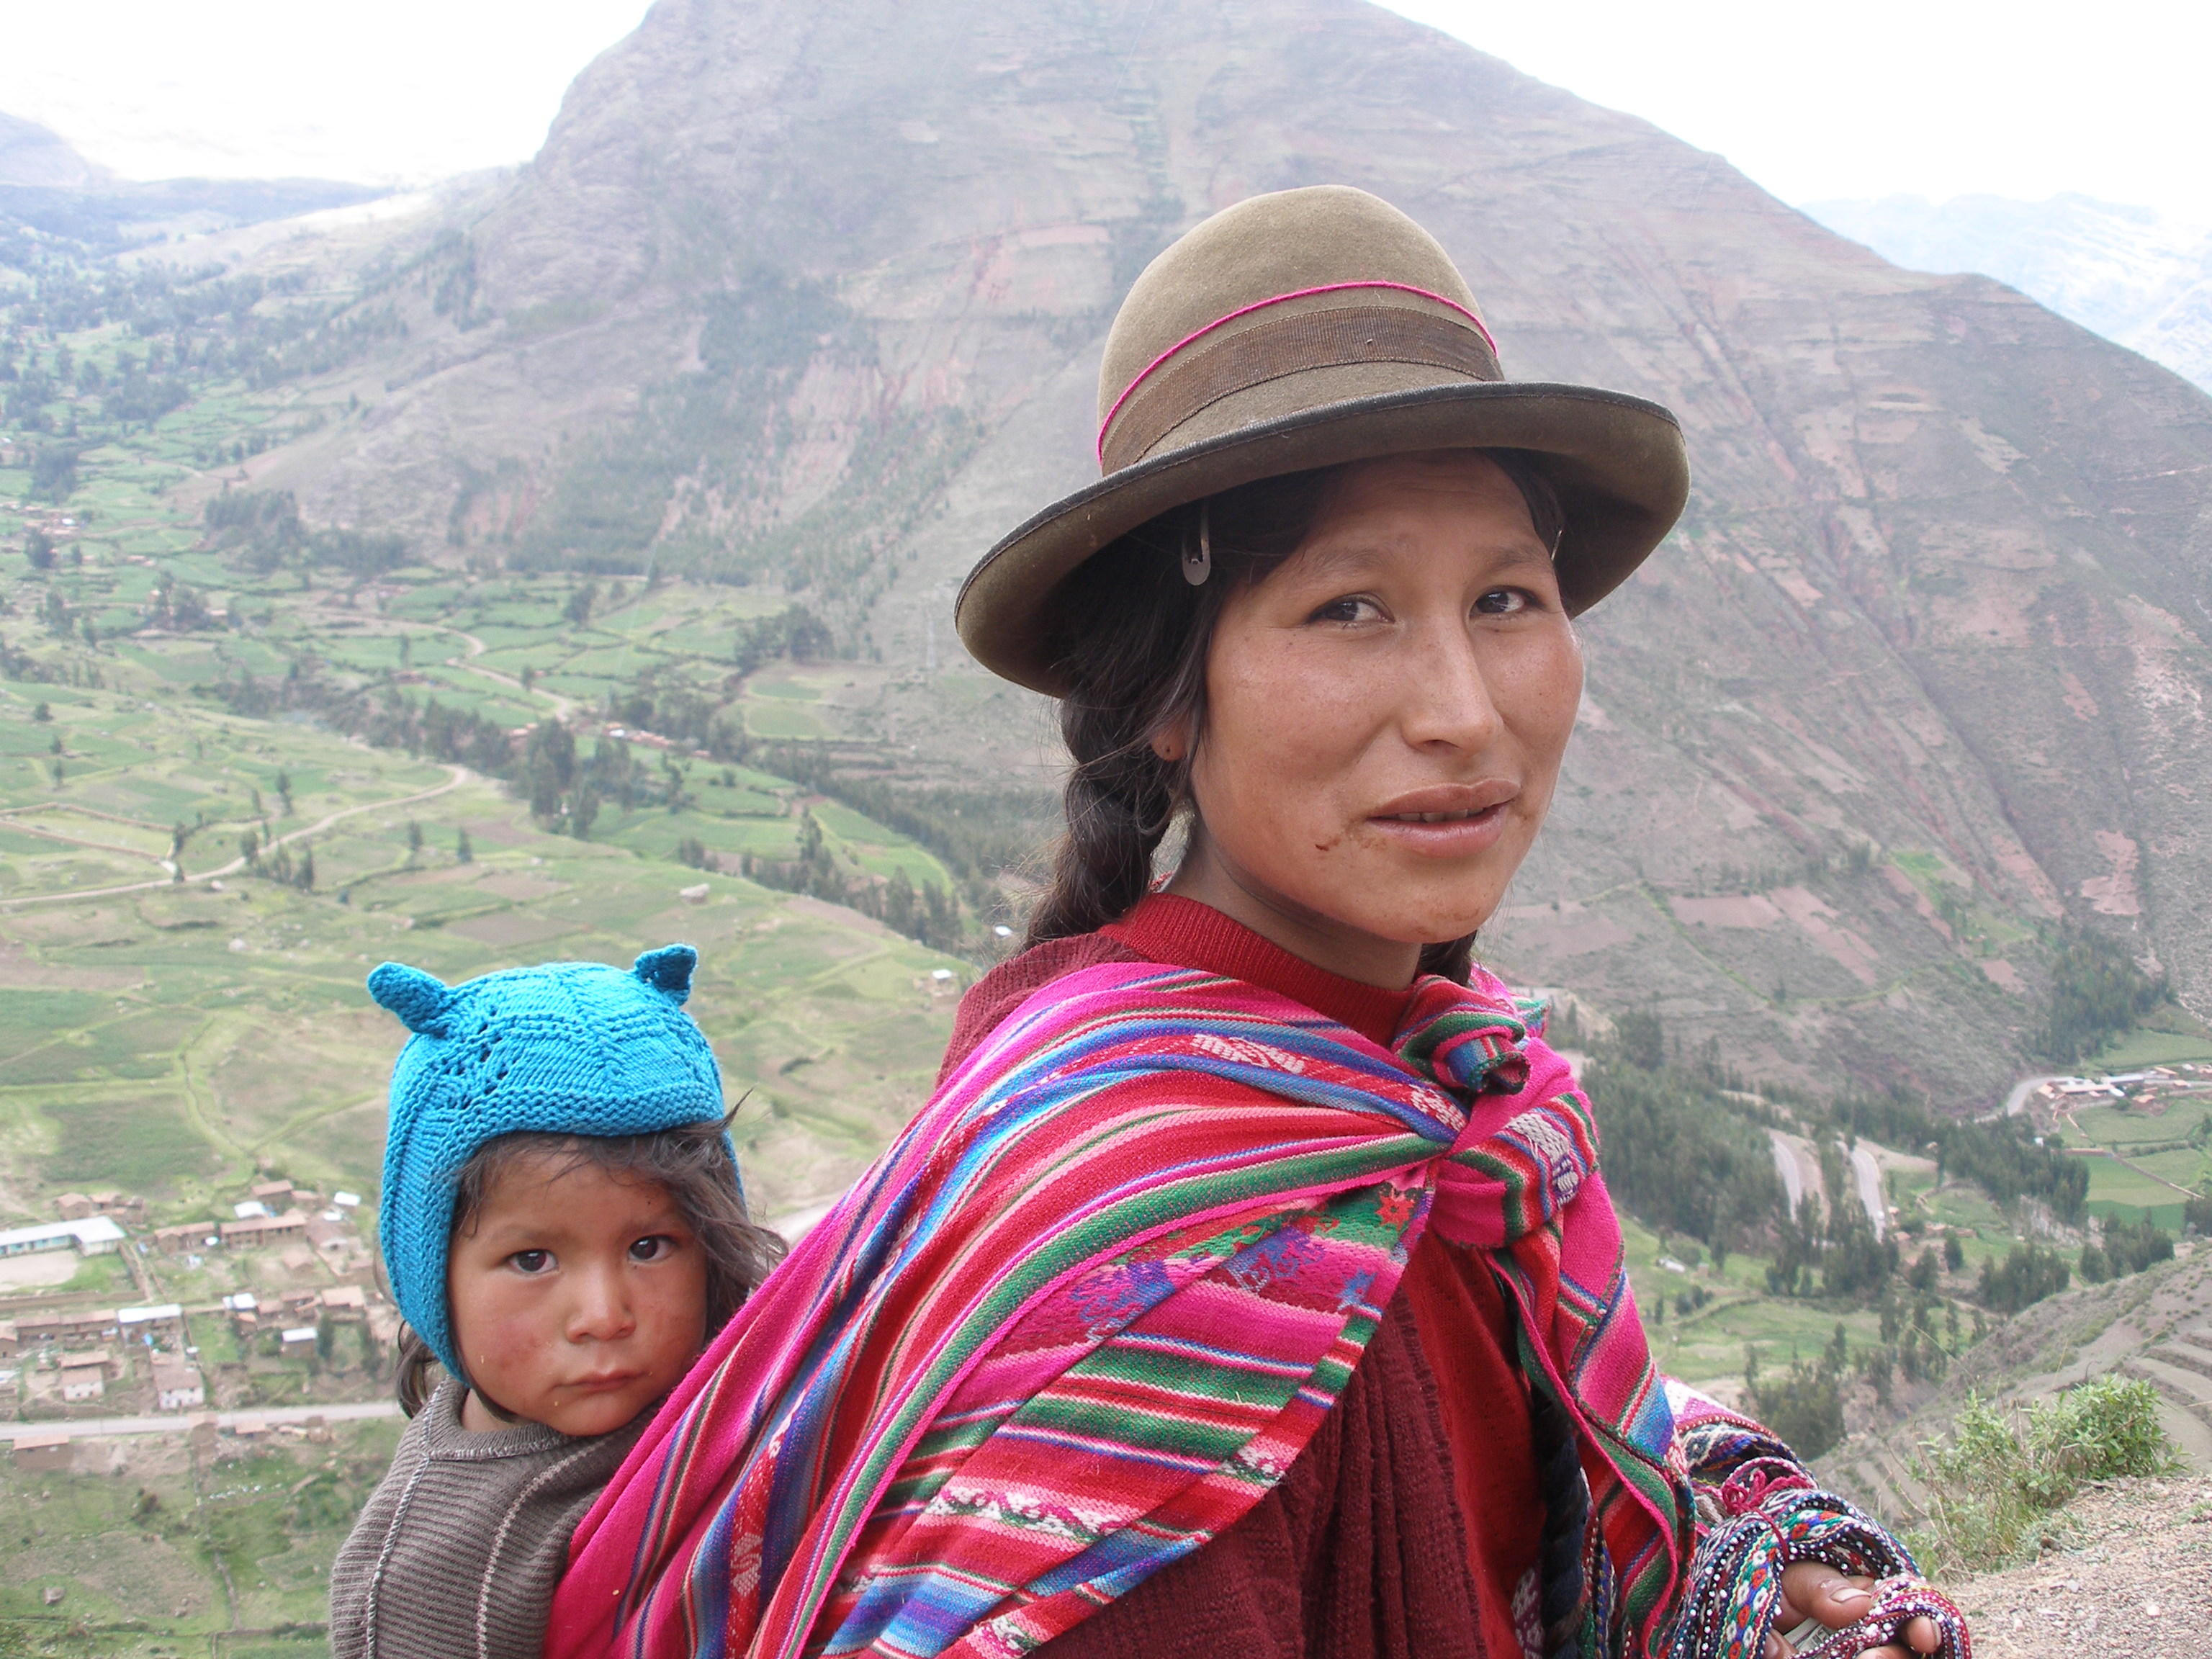 https://upload.wikimedia.org/wikipedia/commons/2/2c/Quechuawomanandchild.jpg